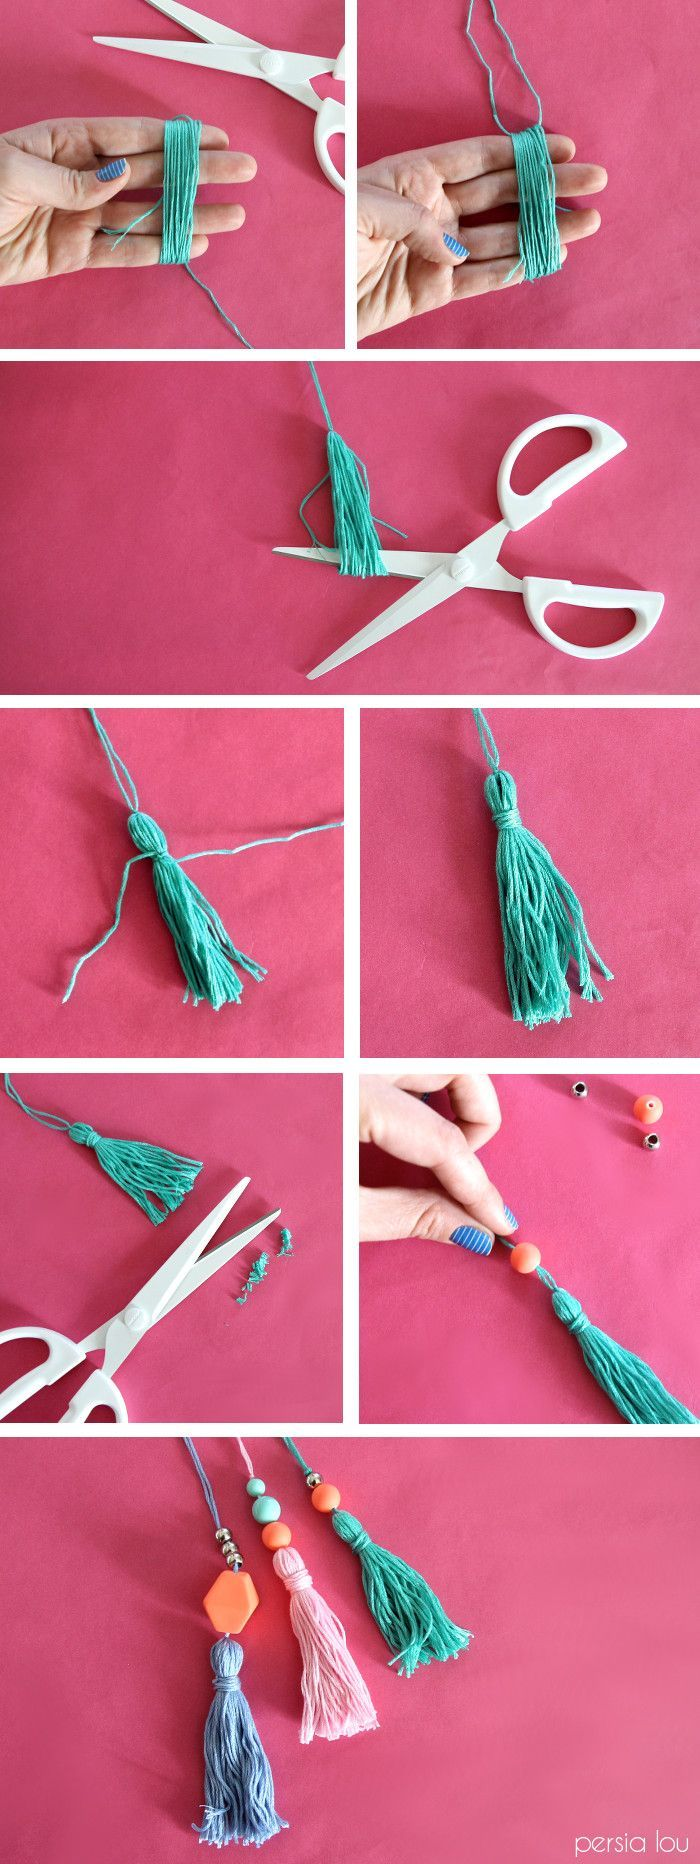 How to make beaded tassels - add to a bag!